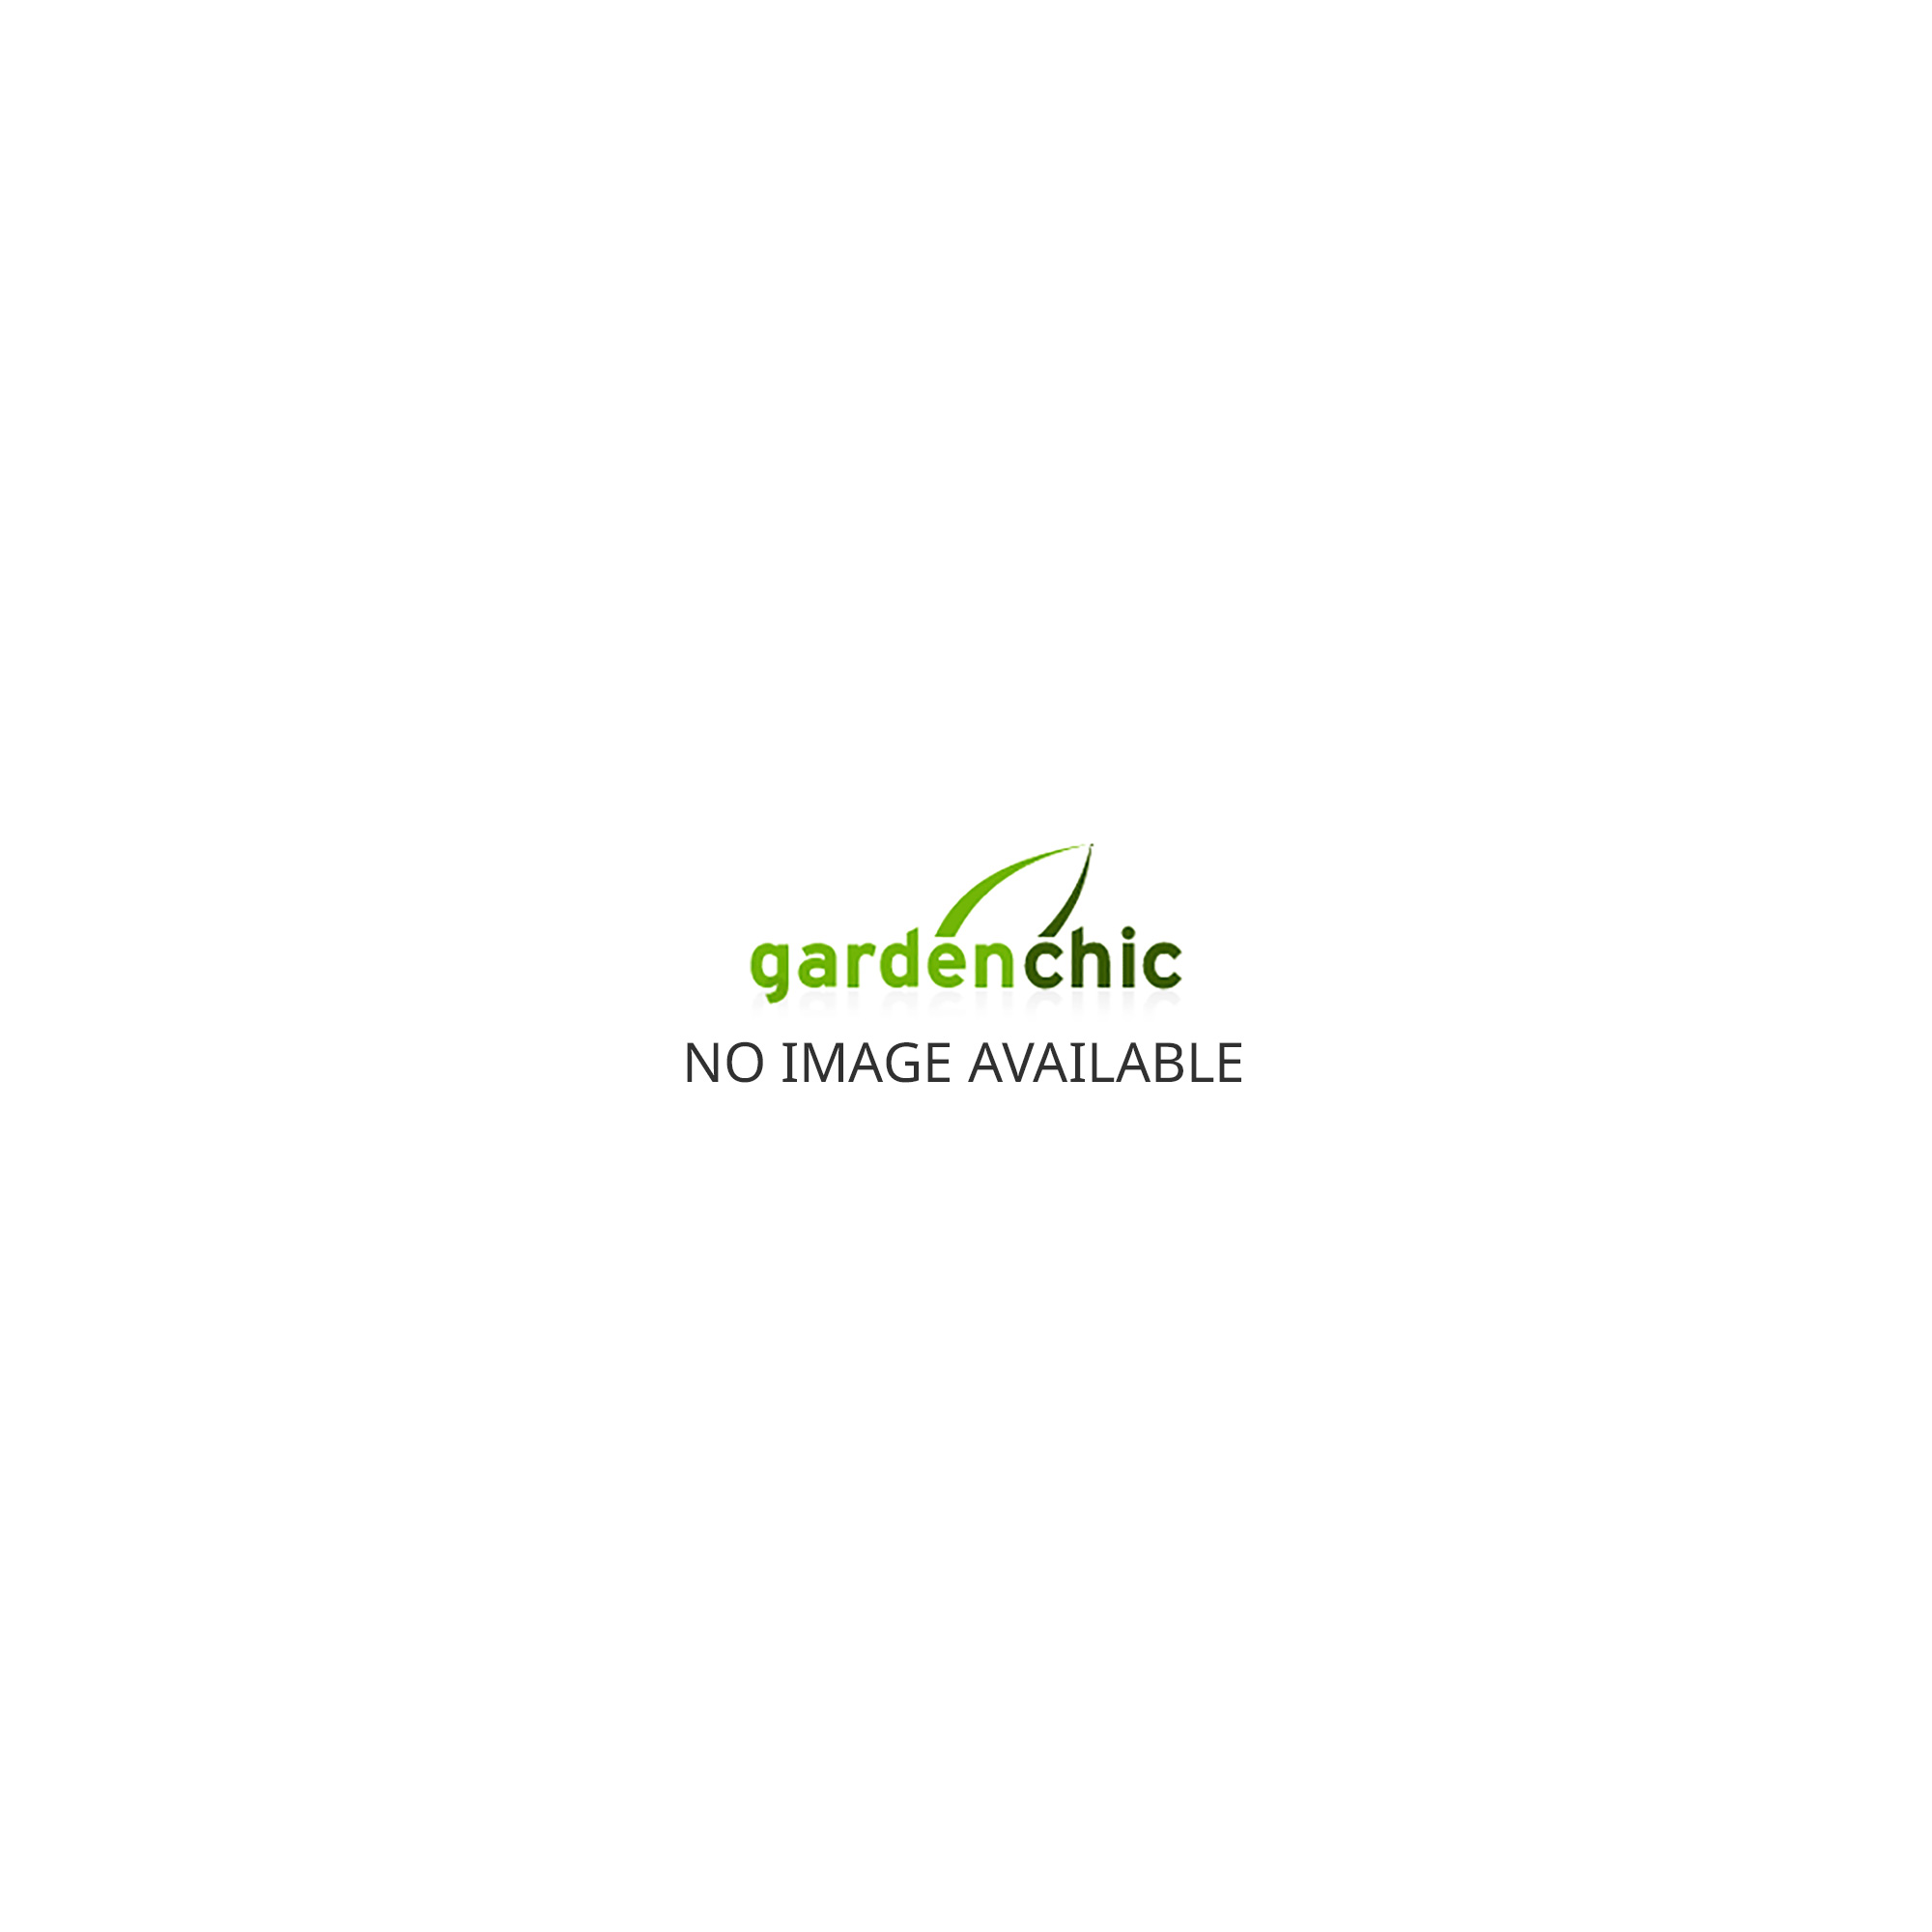 Apollo 2500 Greenhouse - Green FREE Staging until APRIL 2018